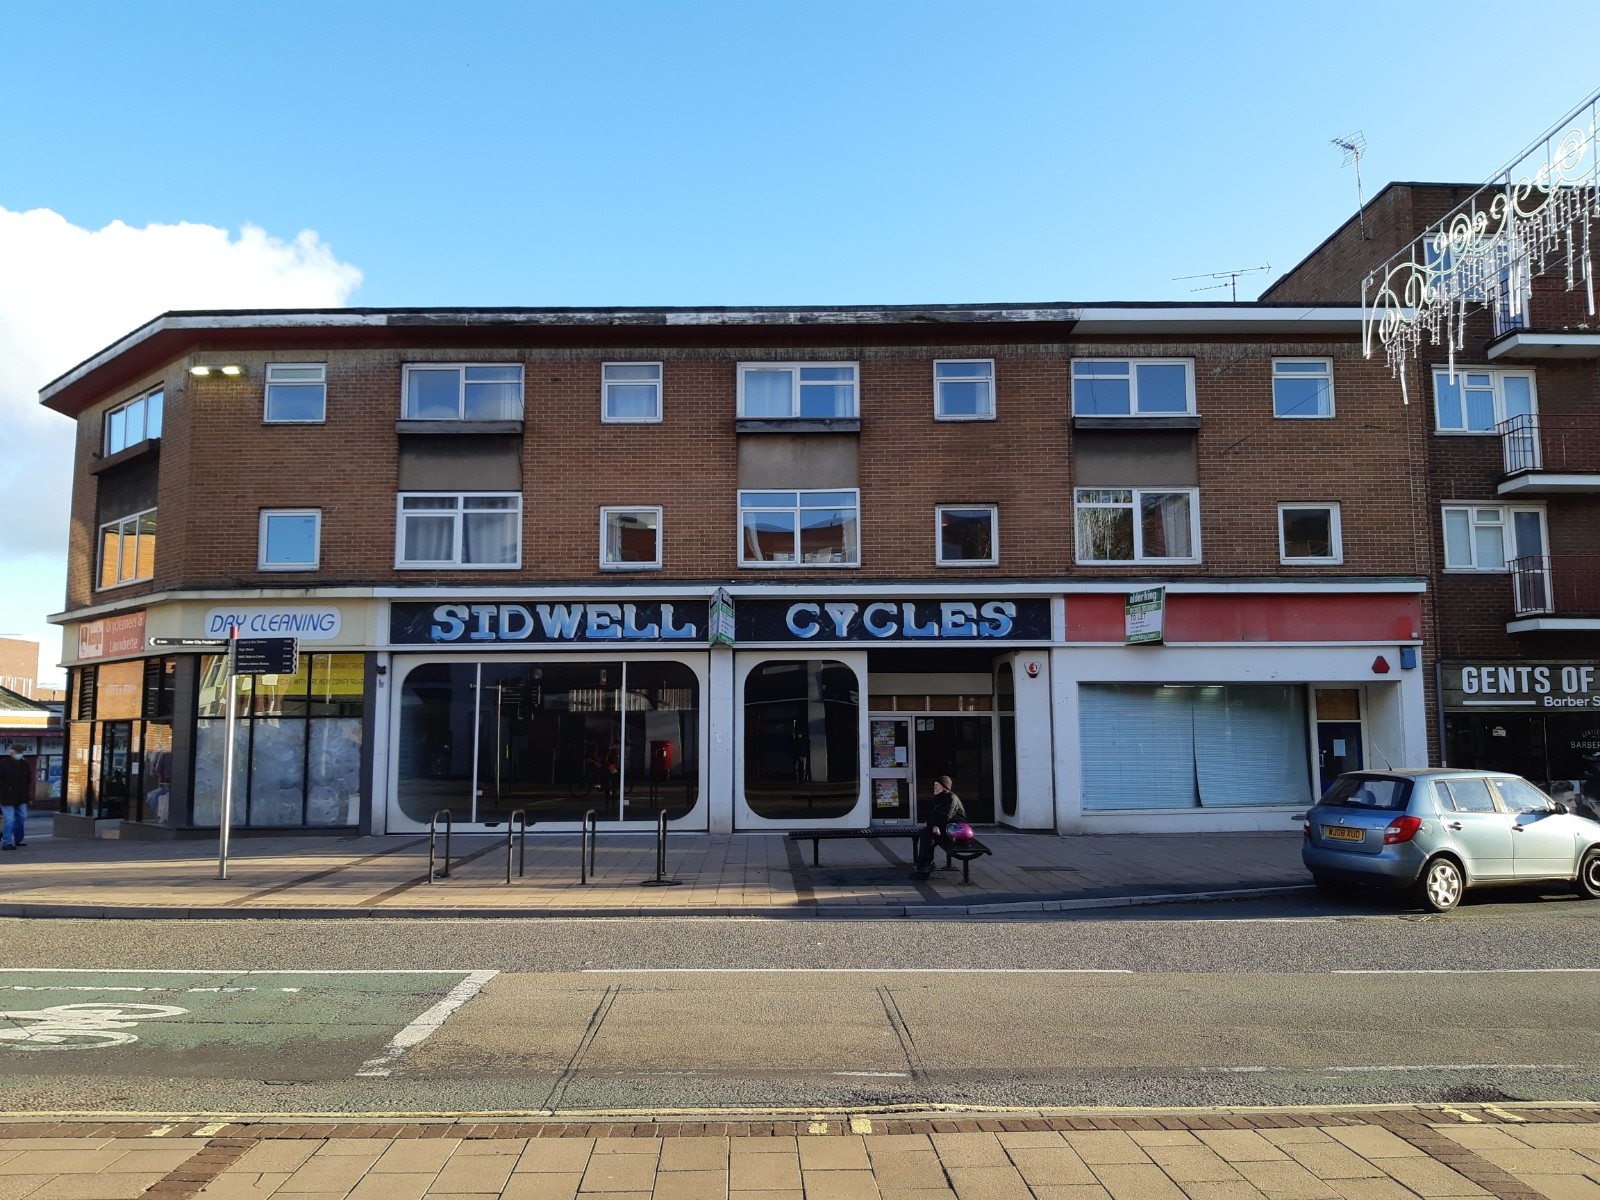 139-142 Sidwell Street, EXETER